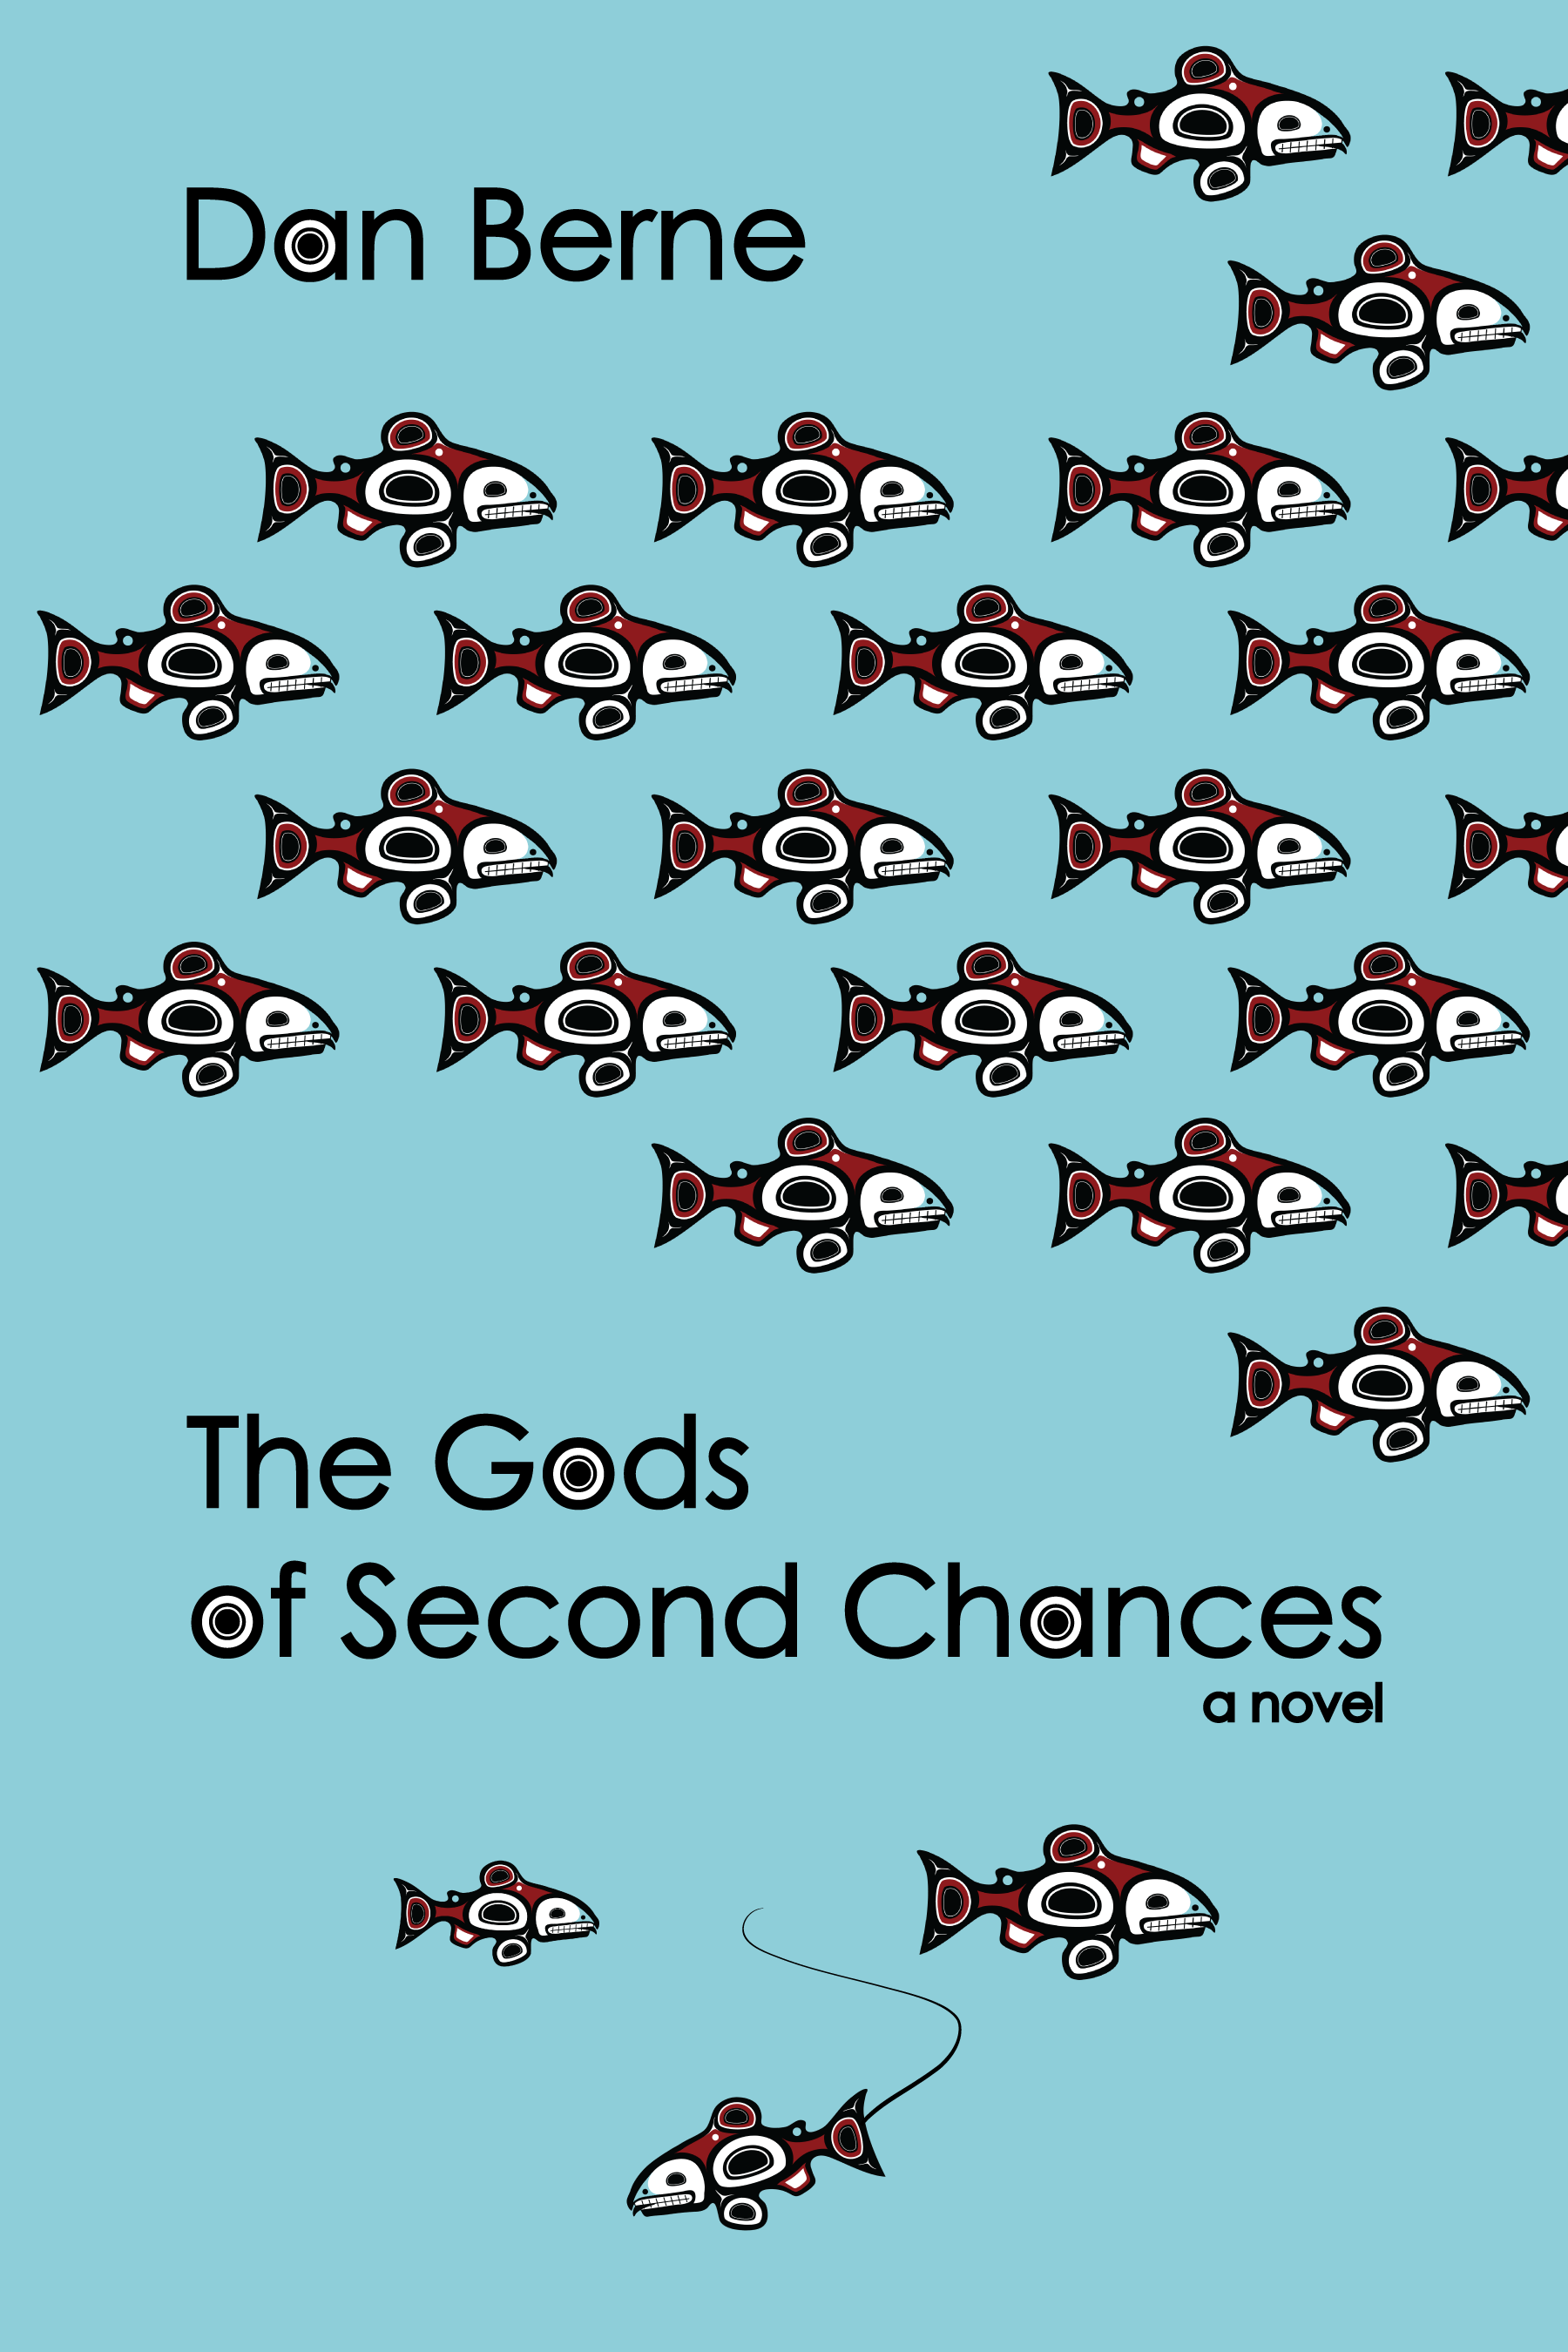 The Gods of Second Chances